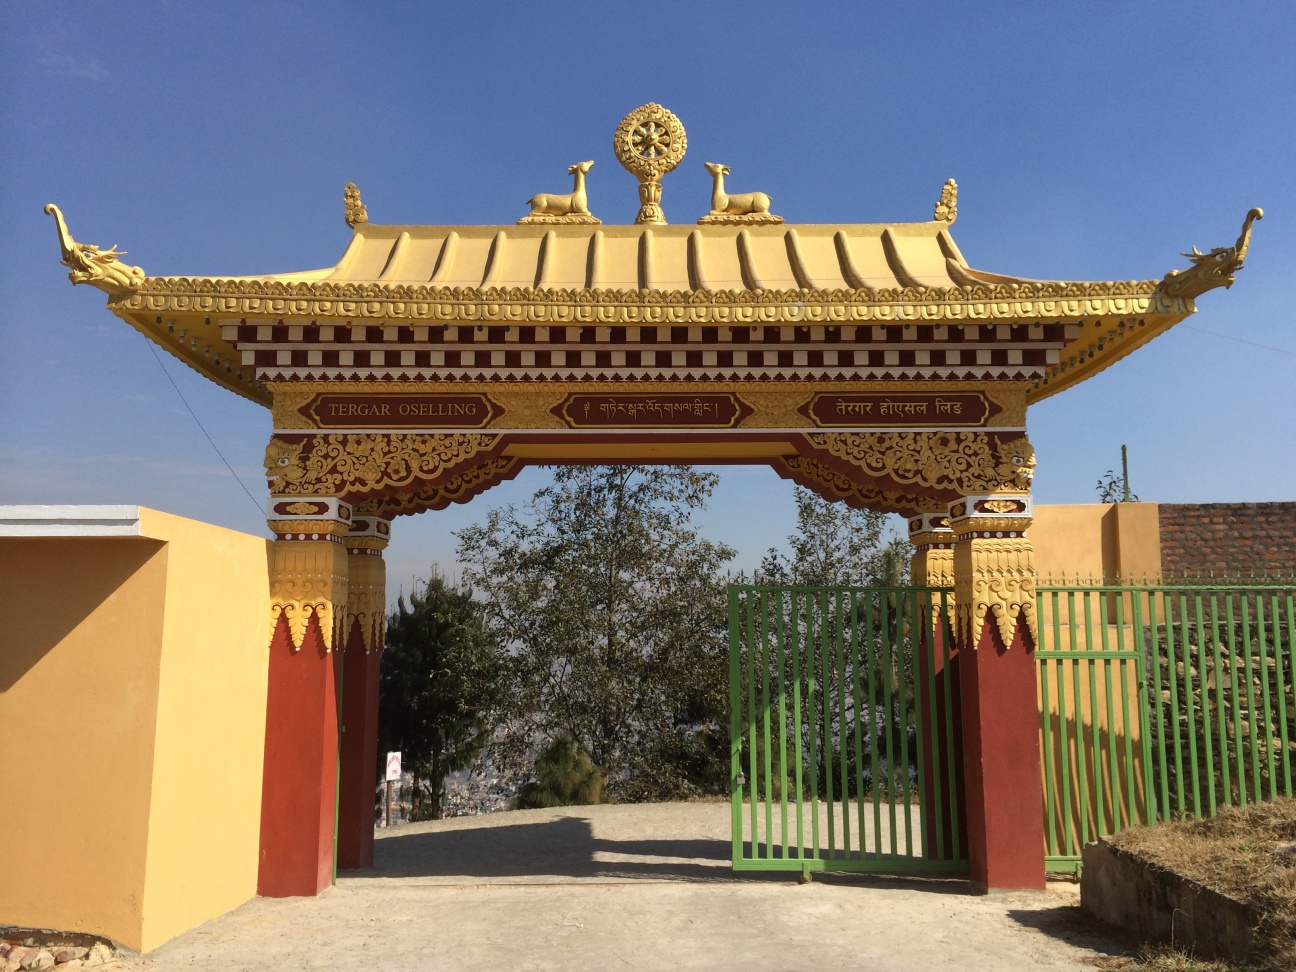 16. Tergar Osel Ling Front Gate